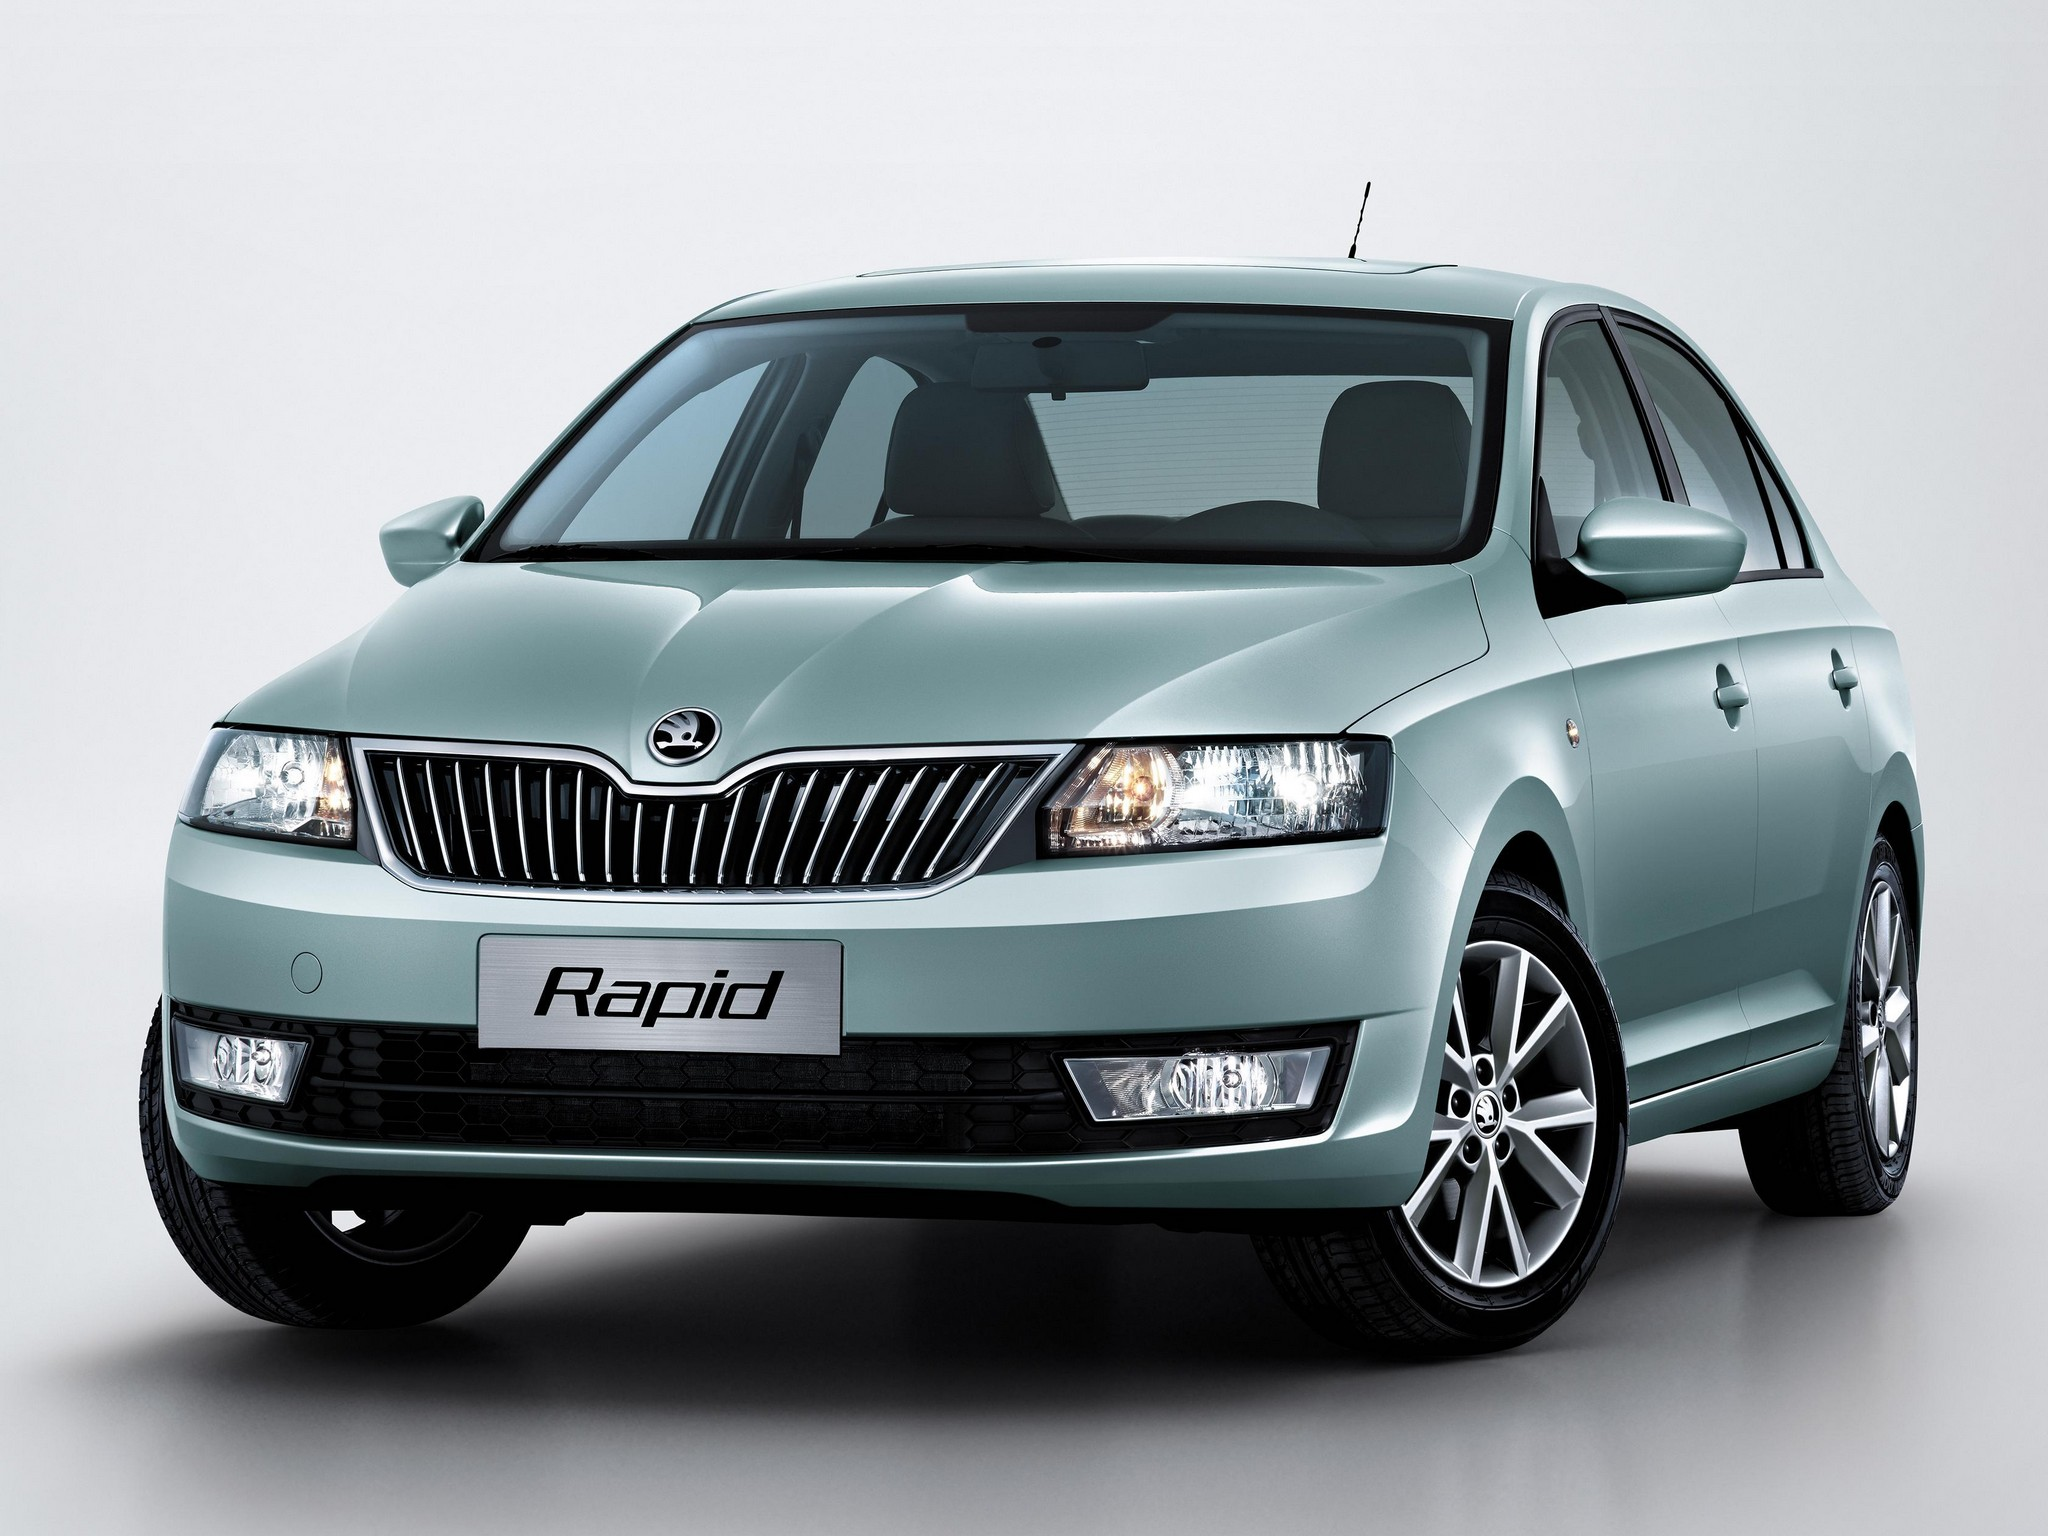 2016 skoda rapid ii pictures information and specs. Black Bedroom Furniture Sets. Home Design Ideas